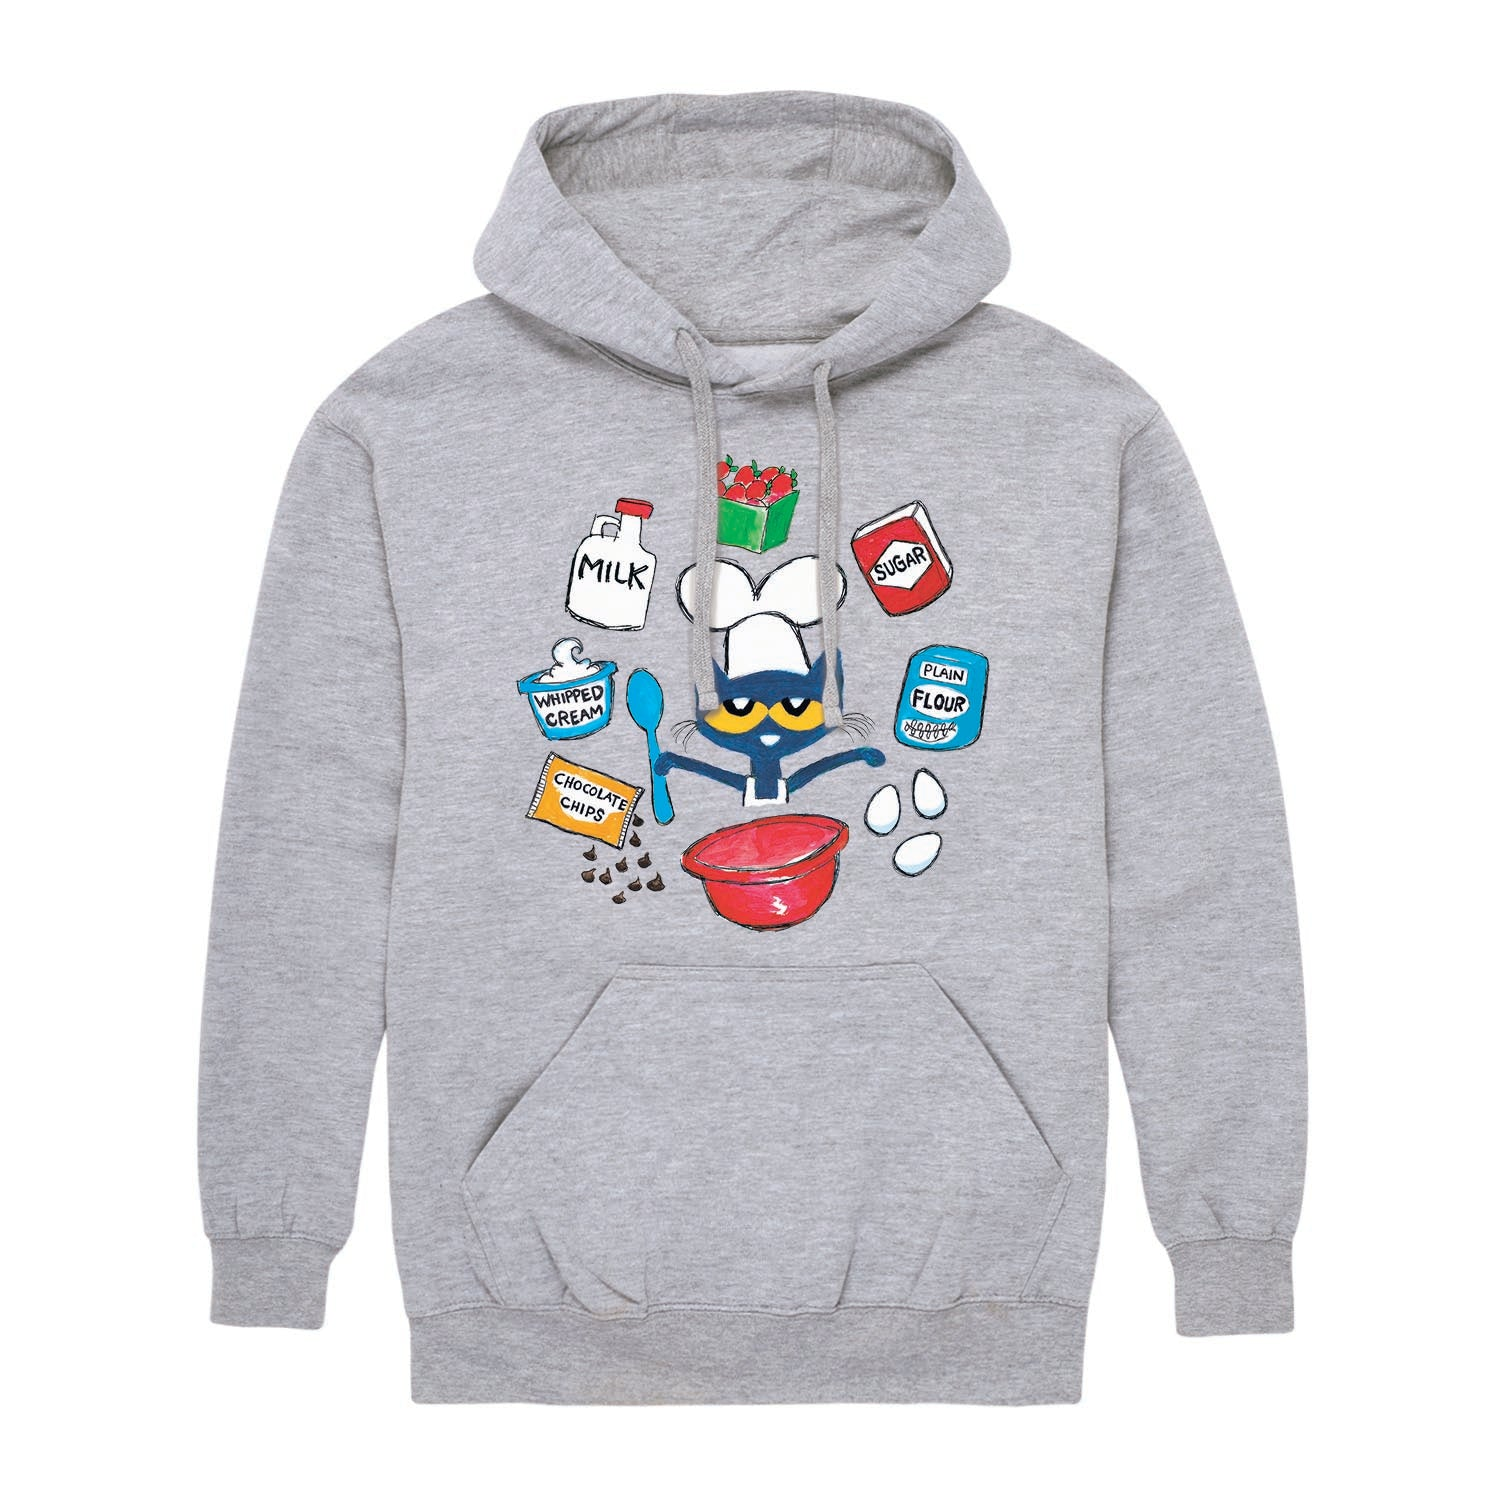 Pete the Cat© Men's Hoodie